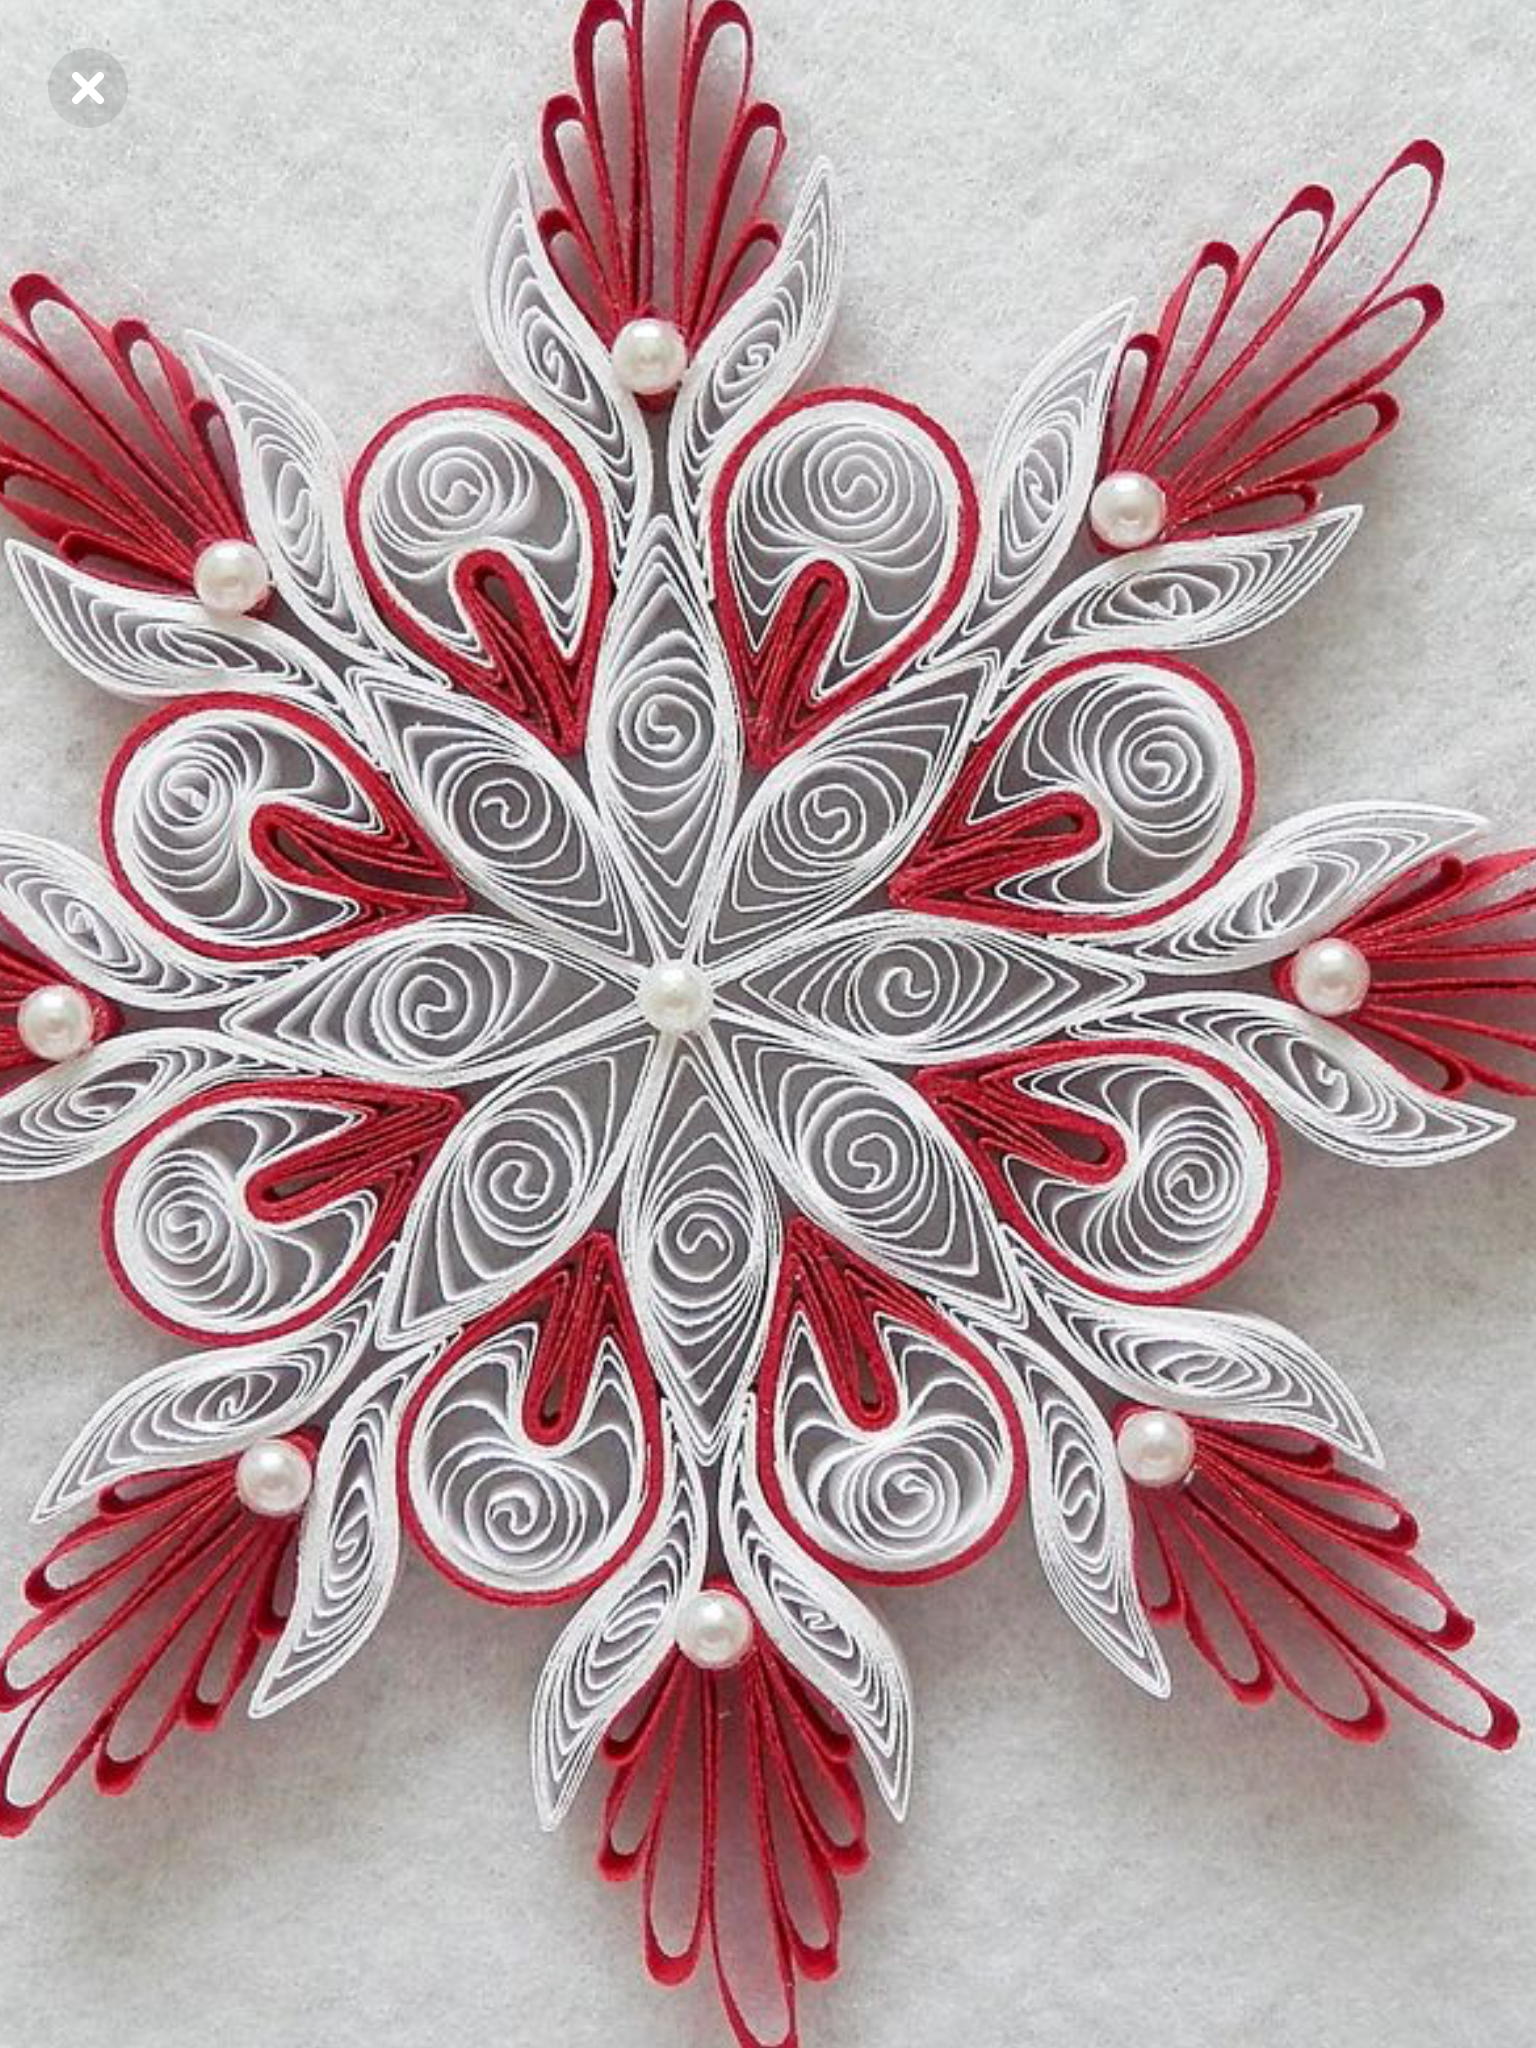 Pin By Wanda Clausen On Quilling Quilling Patterns Quilling